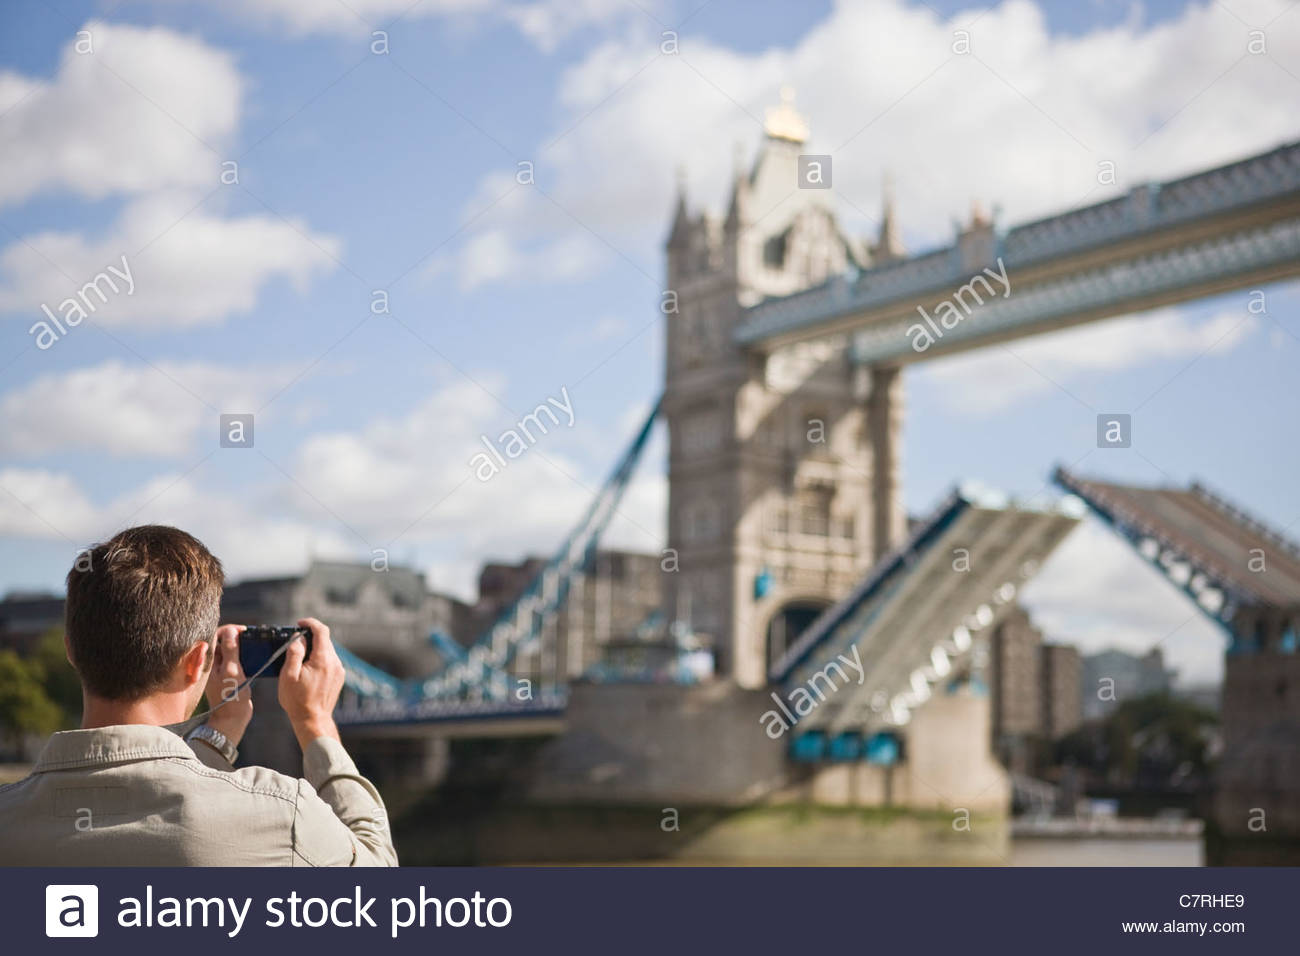 A mid-adult man taking a photograph of Tower Bridge - Stock Image